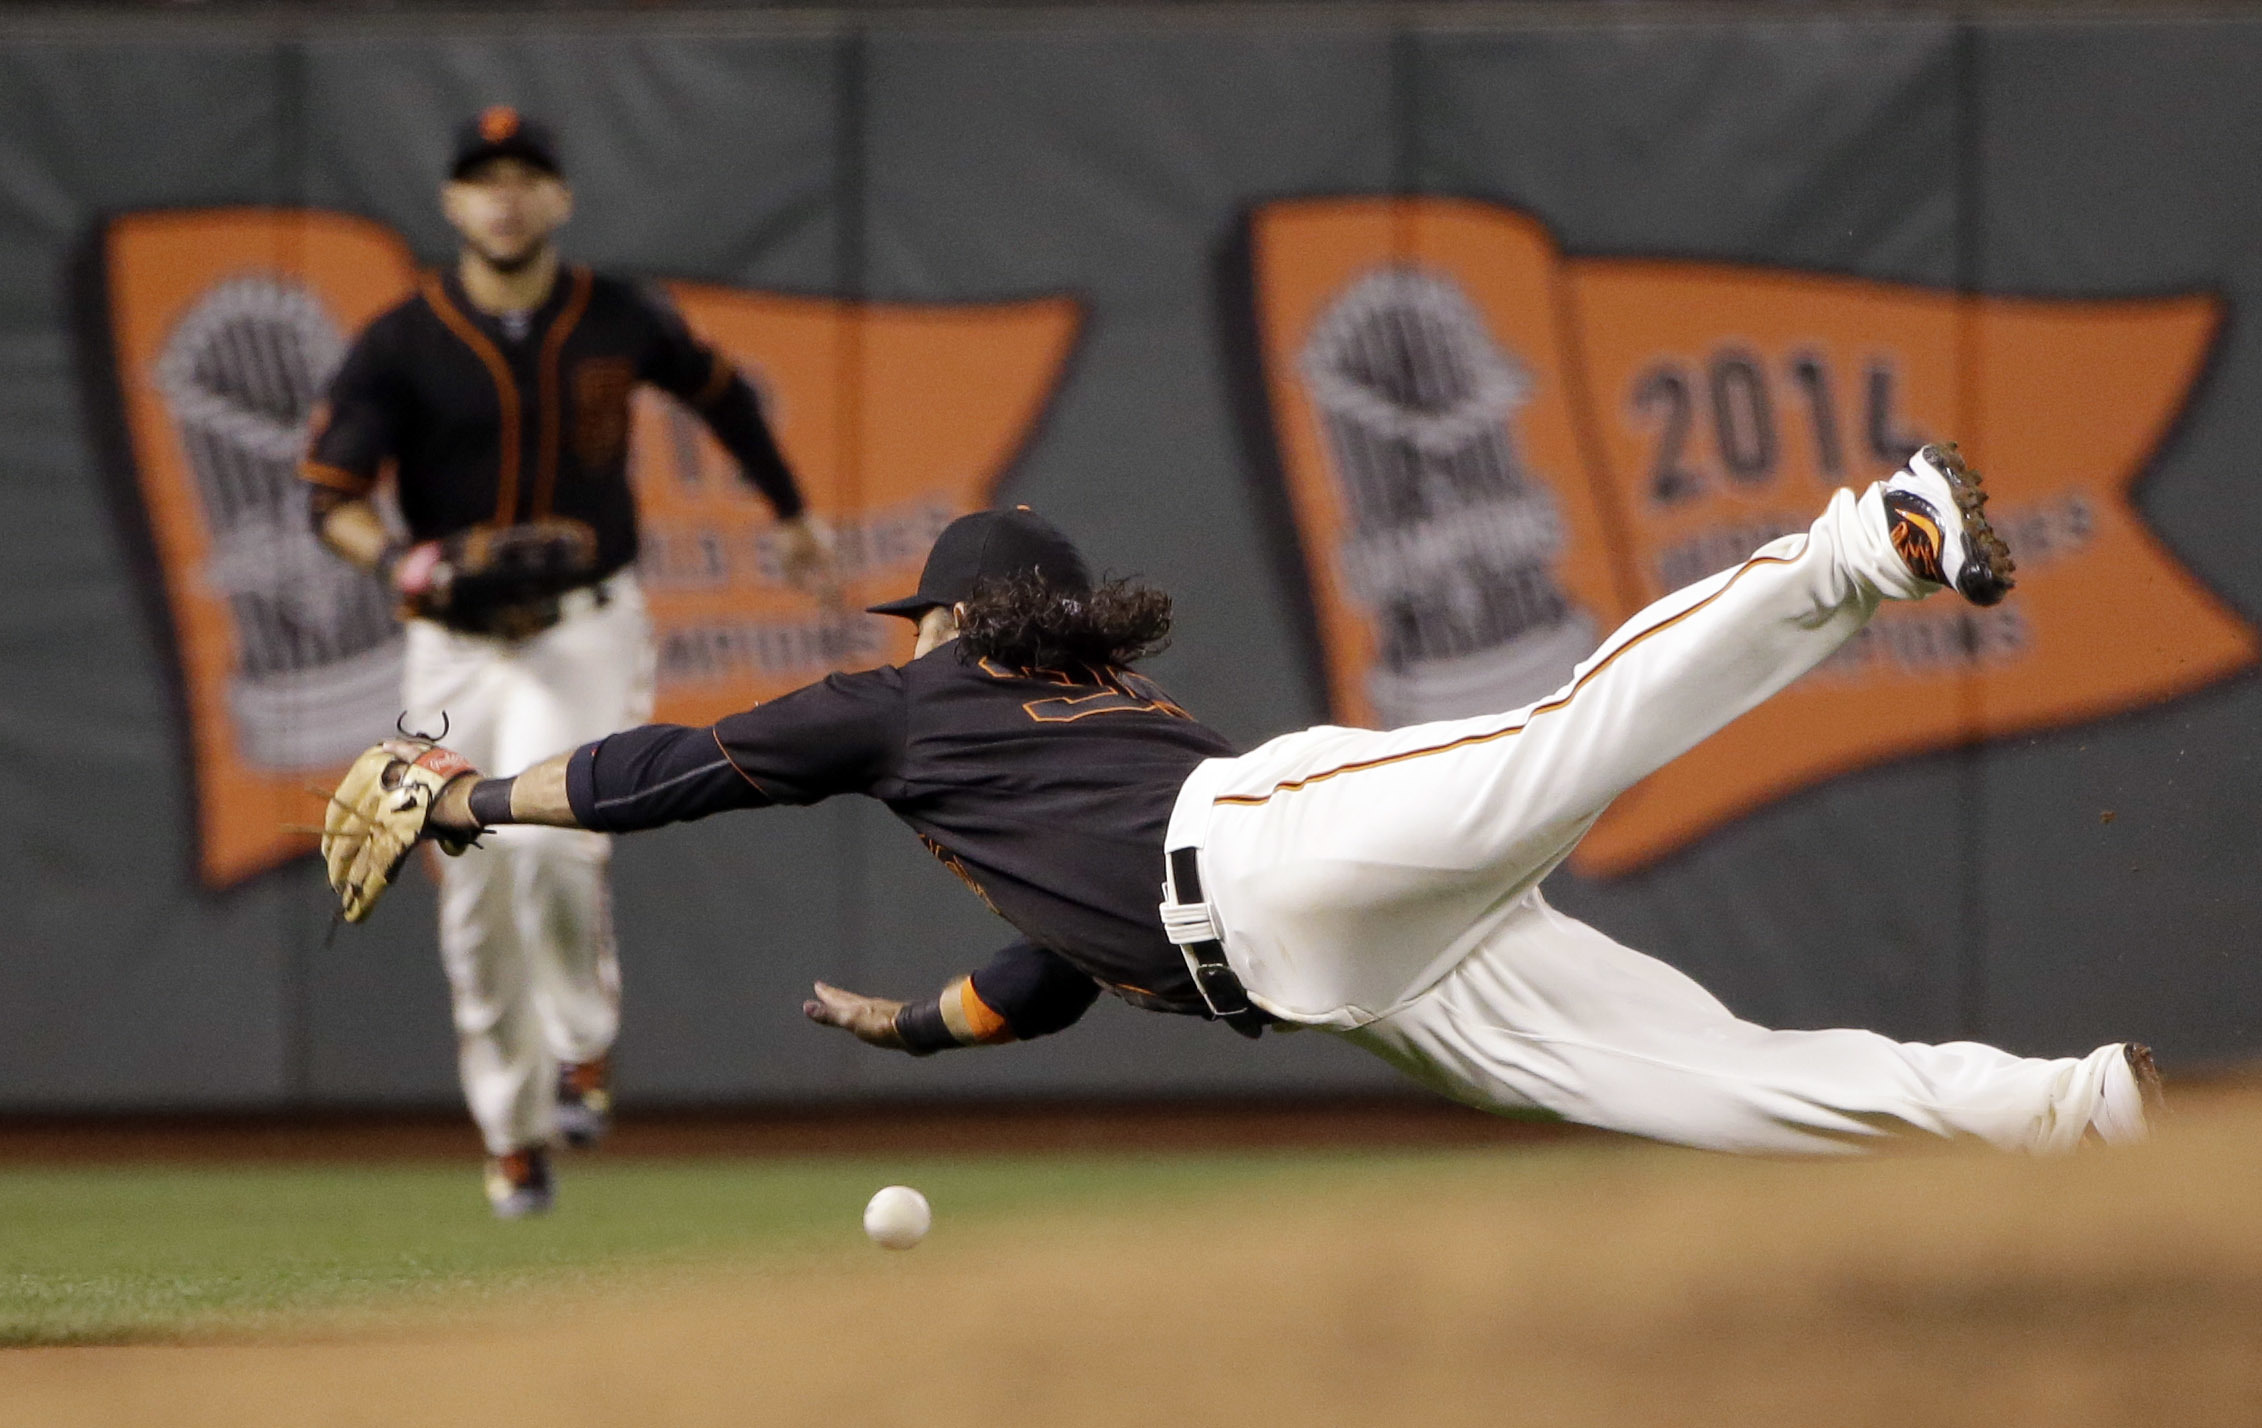 San Francisco Giants shortstop Brandon Crawford dives but can't catch a fly ball from Colorado Rockies' Mark Reynolds during the sixth inning of a baseball game Friday, May 6, 2016, in San Francisco. (AP Photo/Marcio Jose Sanchez)